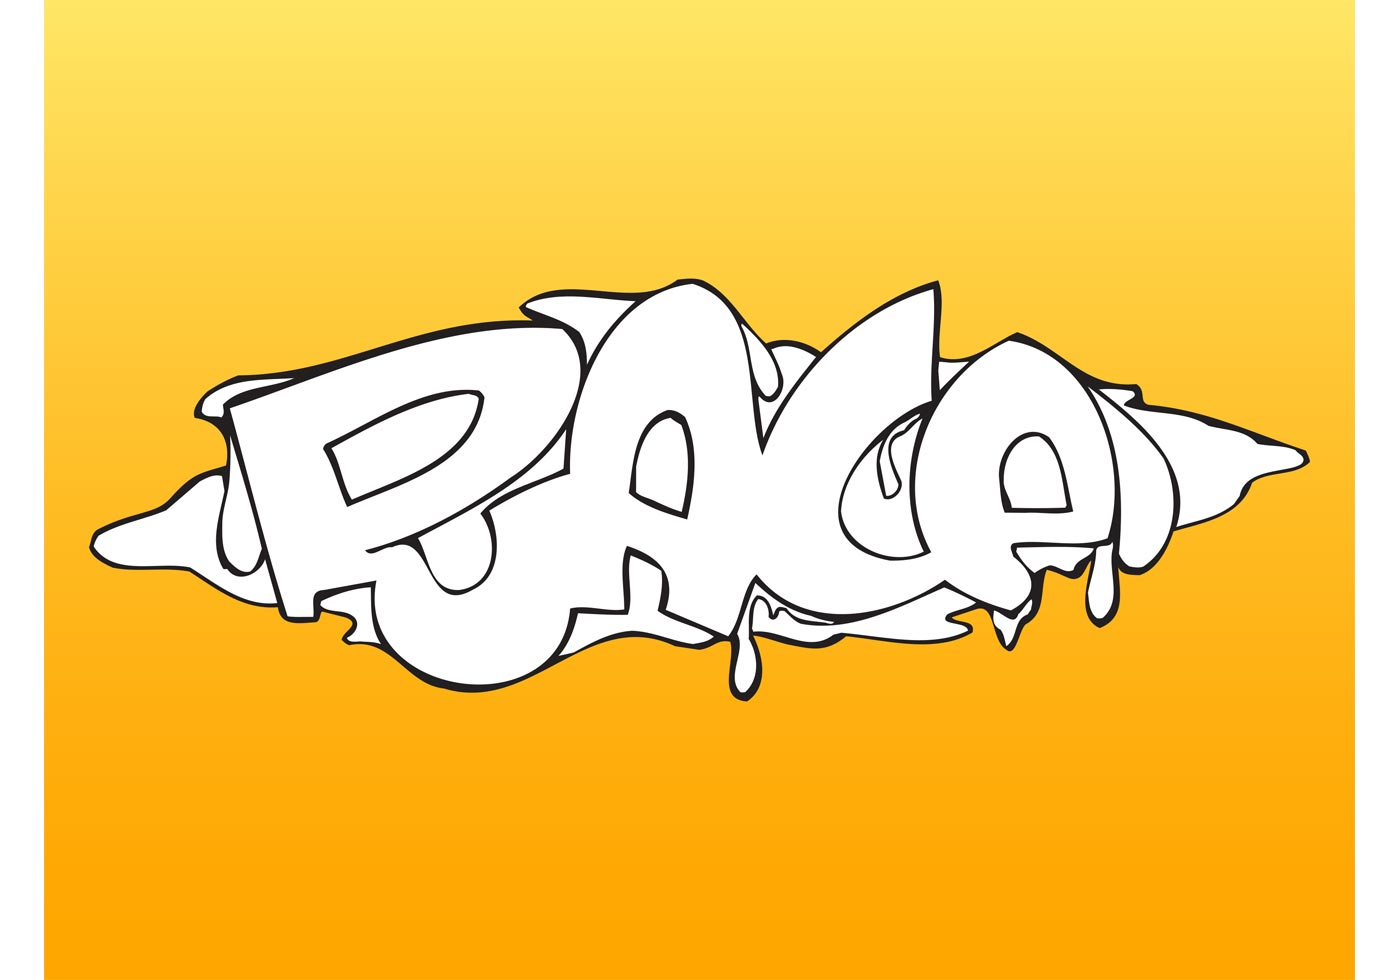 Race Graffiti - Download Free Vector Art, Stock Graphics & Images